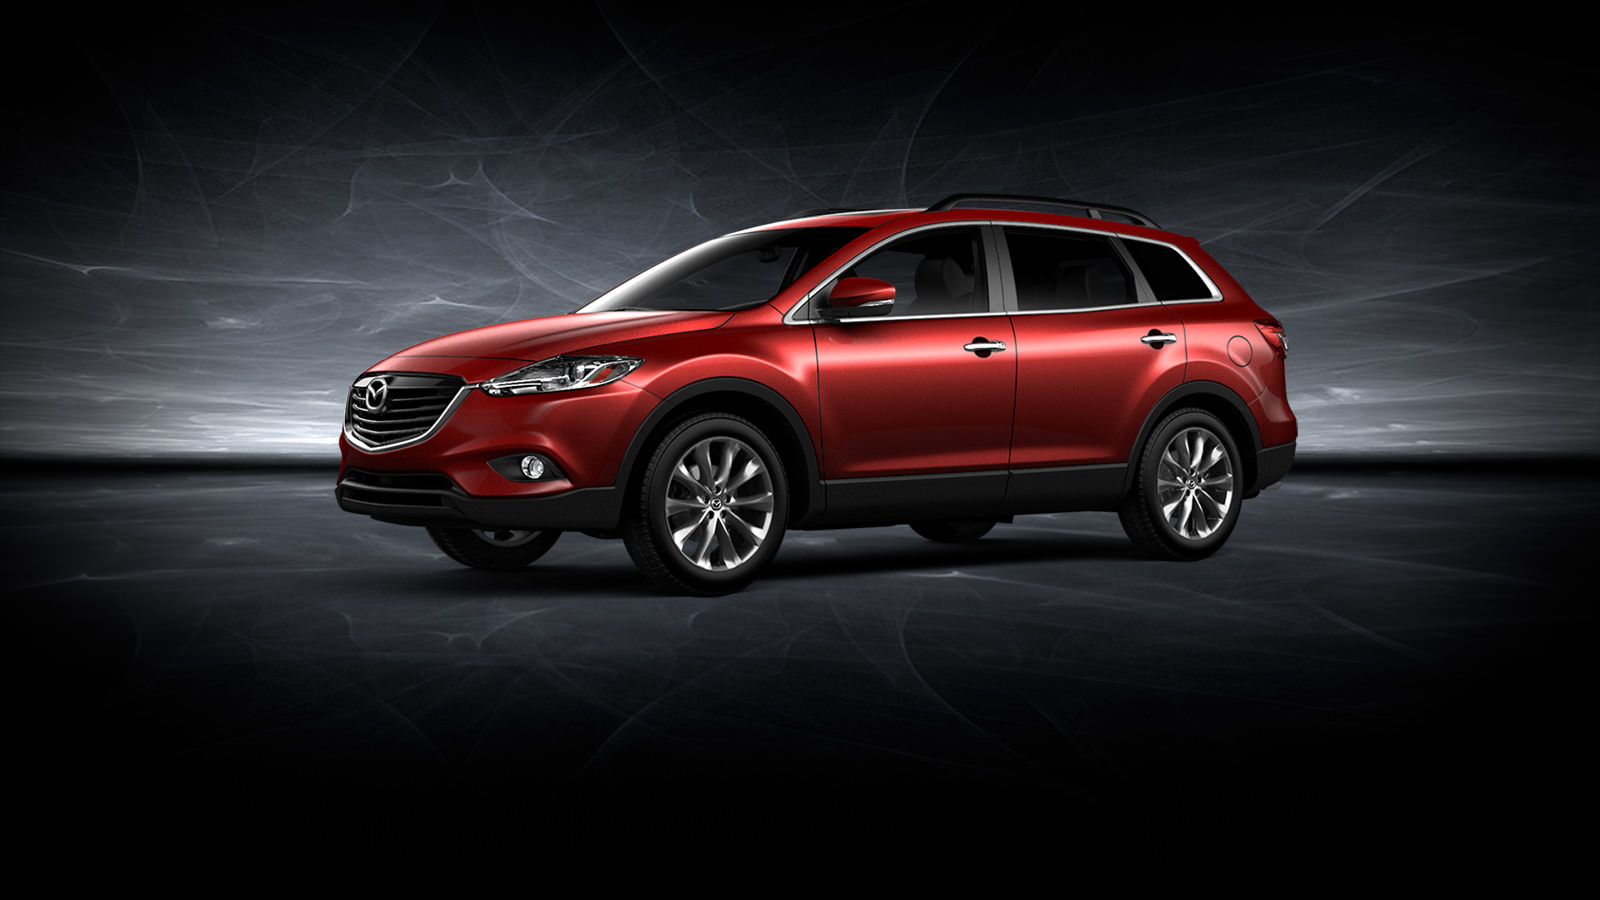 Pictures of mazda cx-9 #10